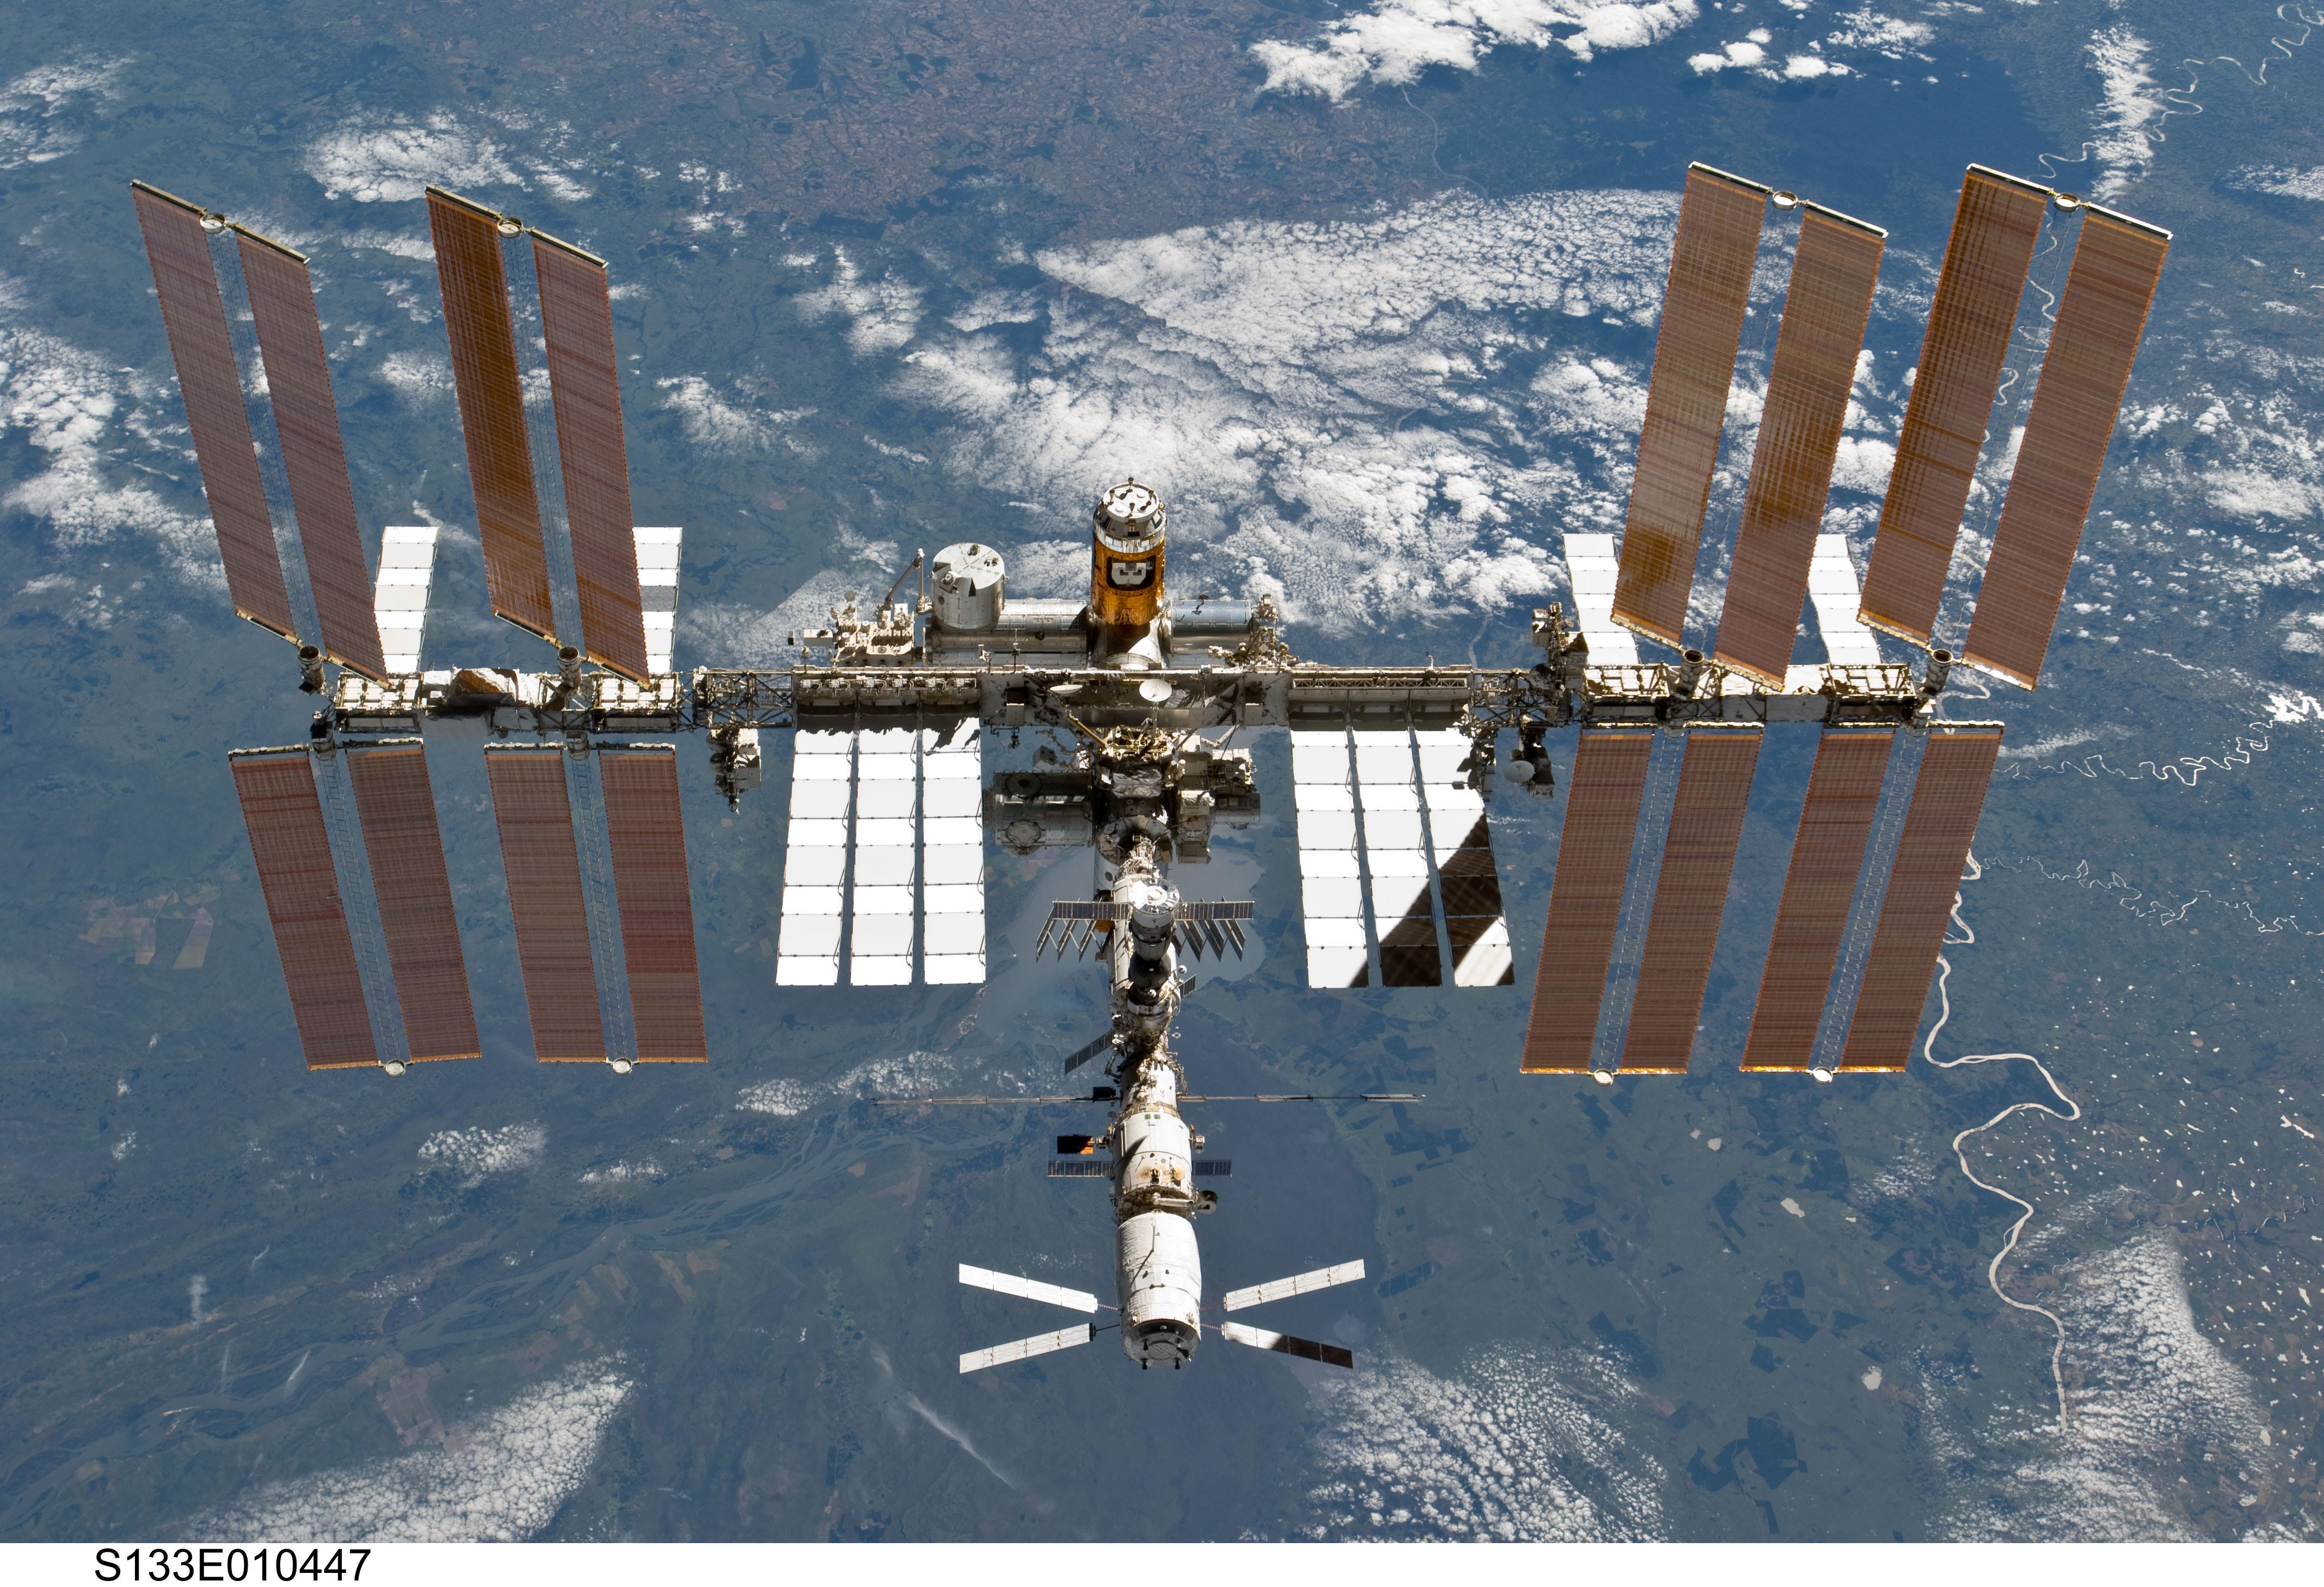 636620899030124587-iss-s133e010447 NASA: 'Mal-intent' not necessarily behind ISS pressure leak